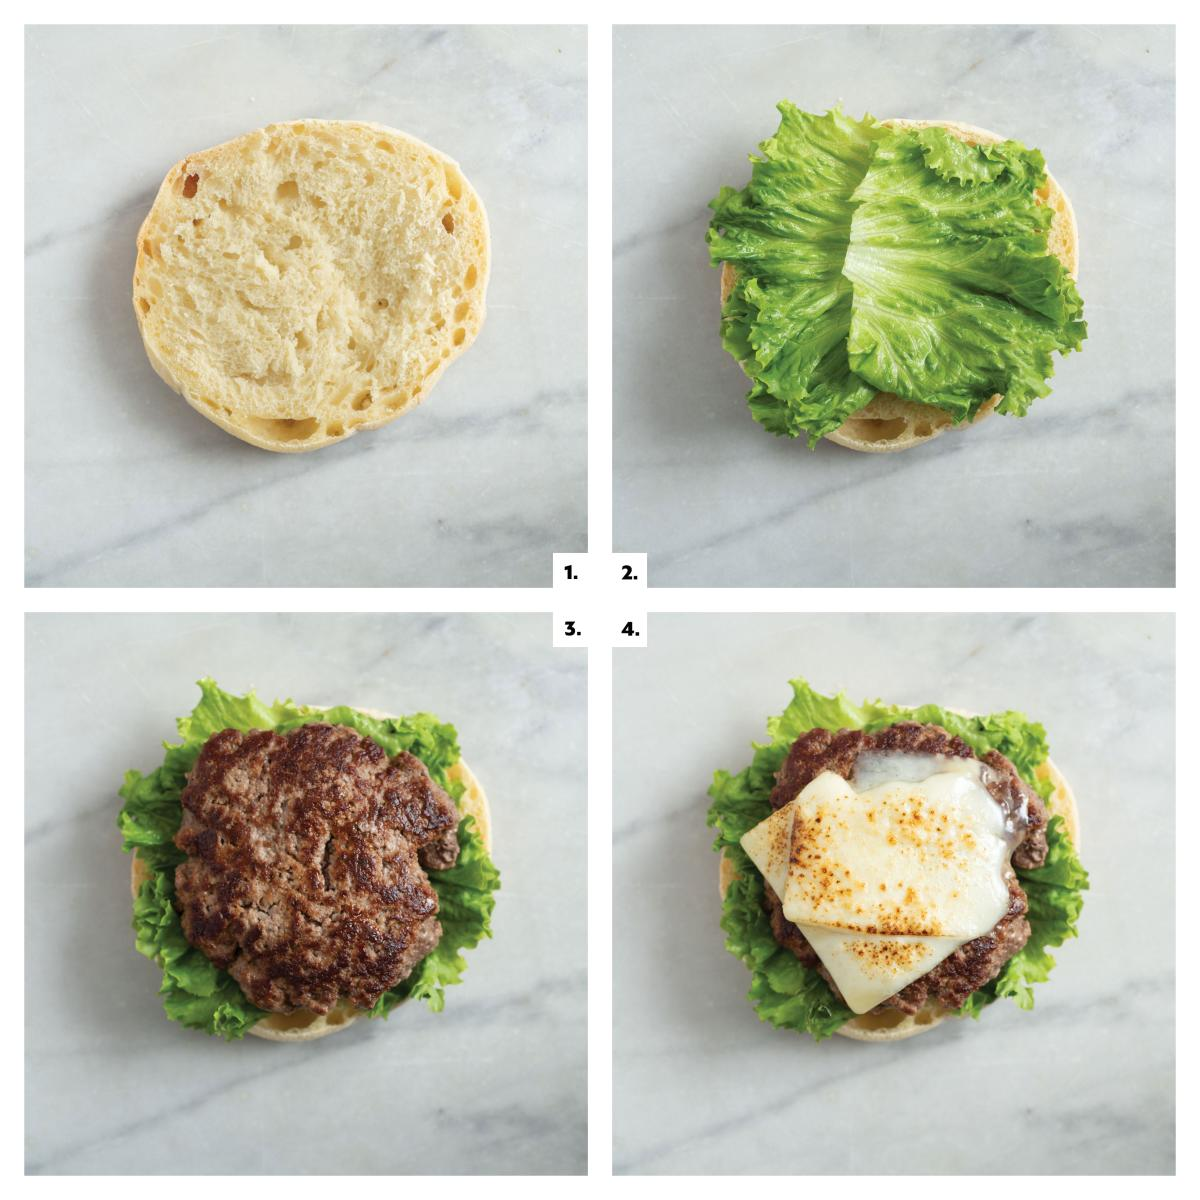 The Perfect Green Chile Cheeseburger - Step by Step